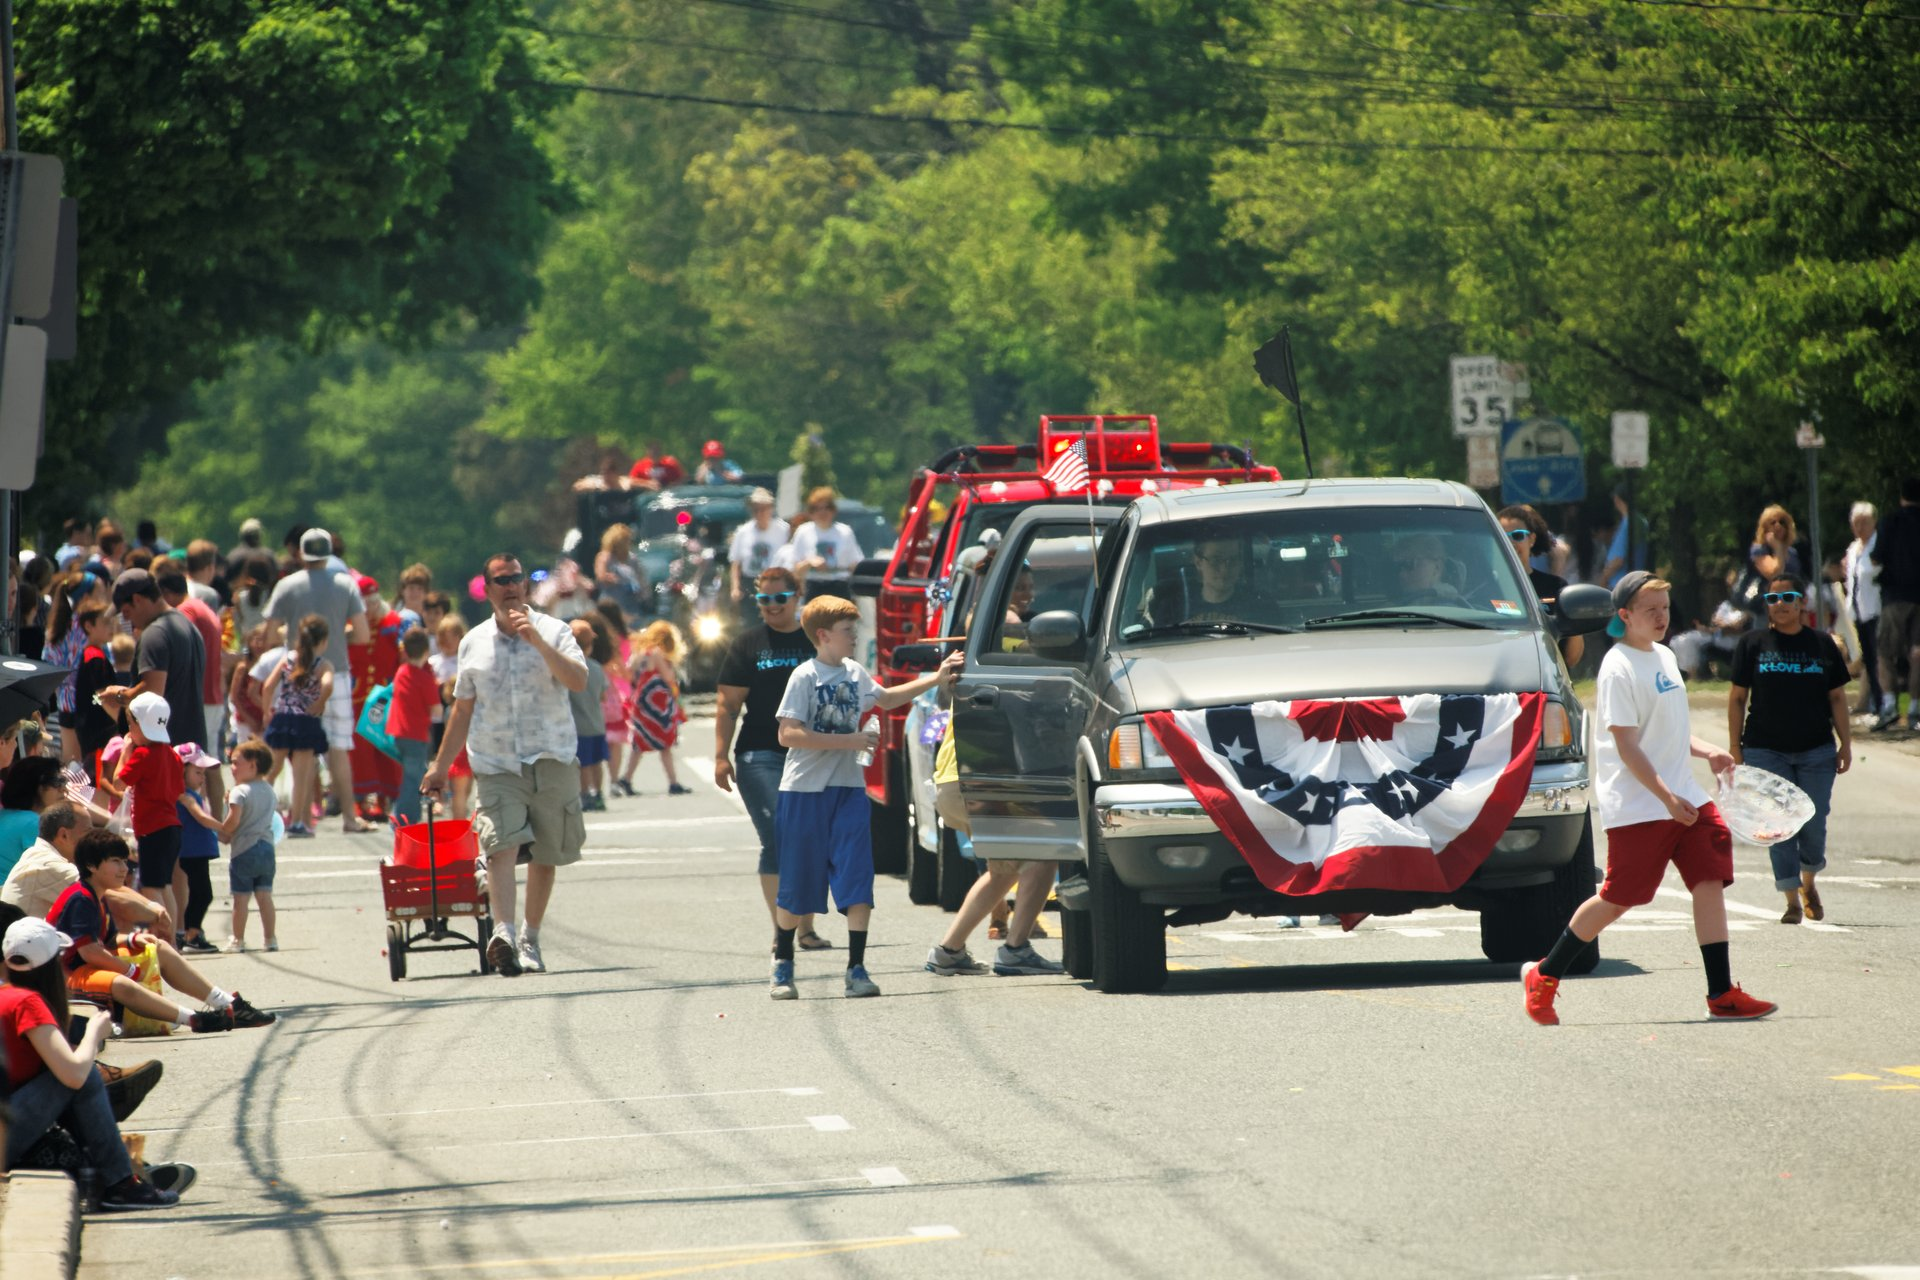 Memorial Day Parade in Wyckoff, New Jersey 2020